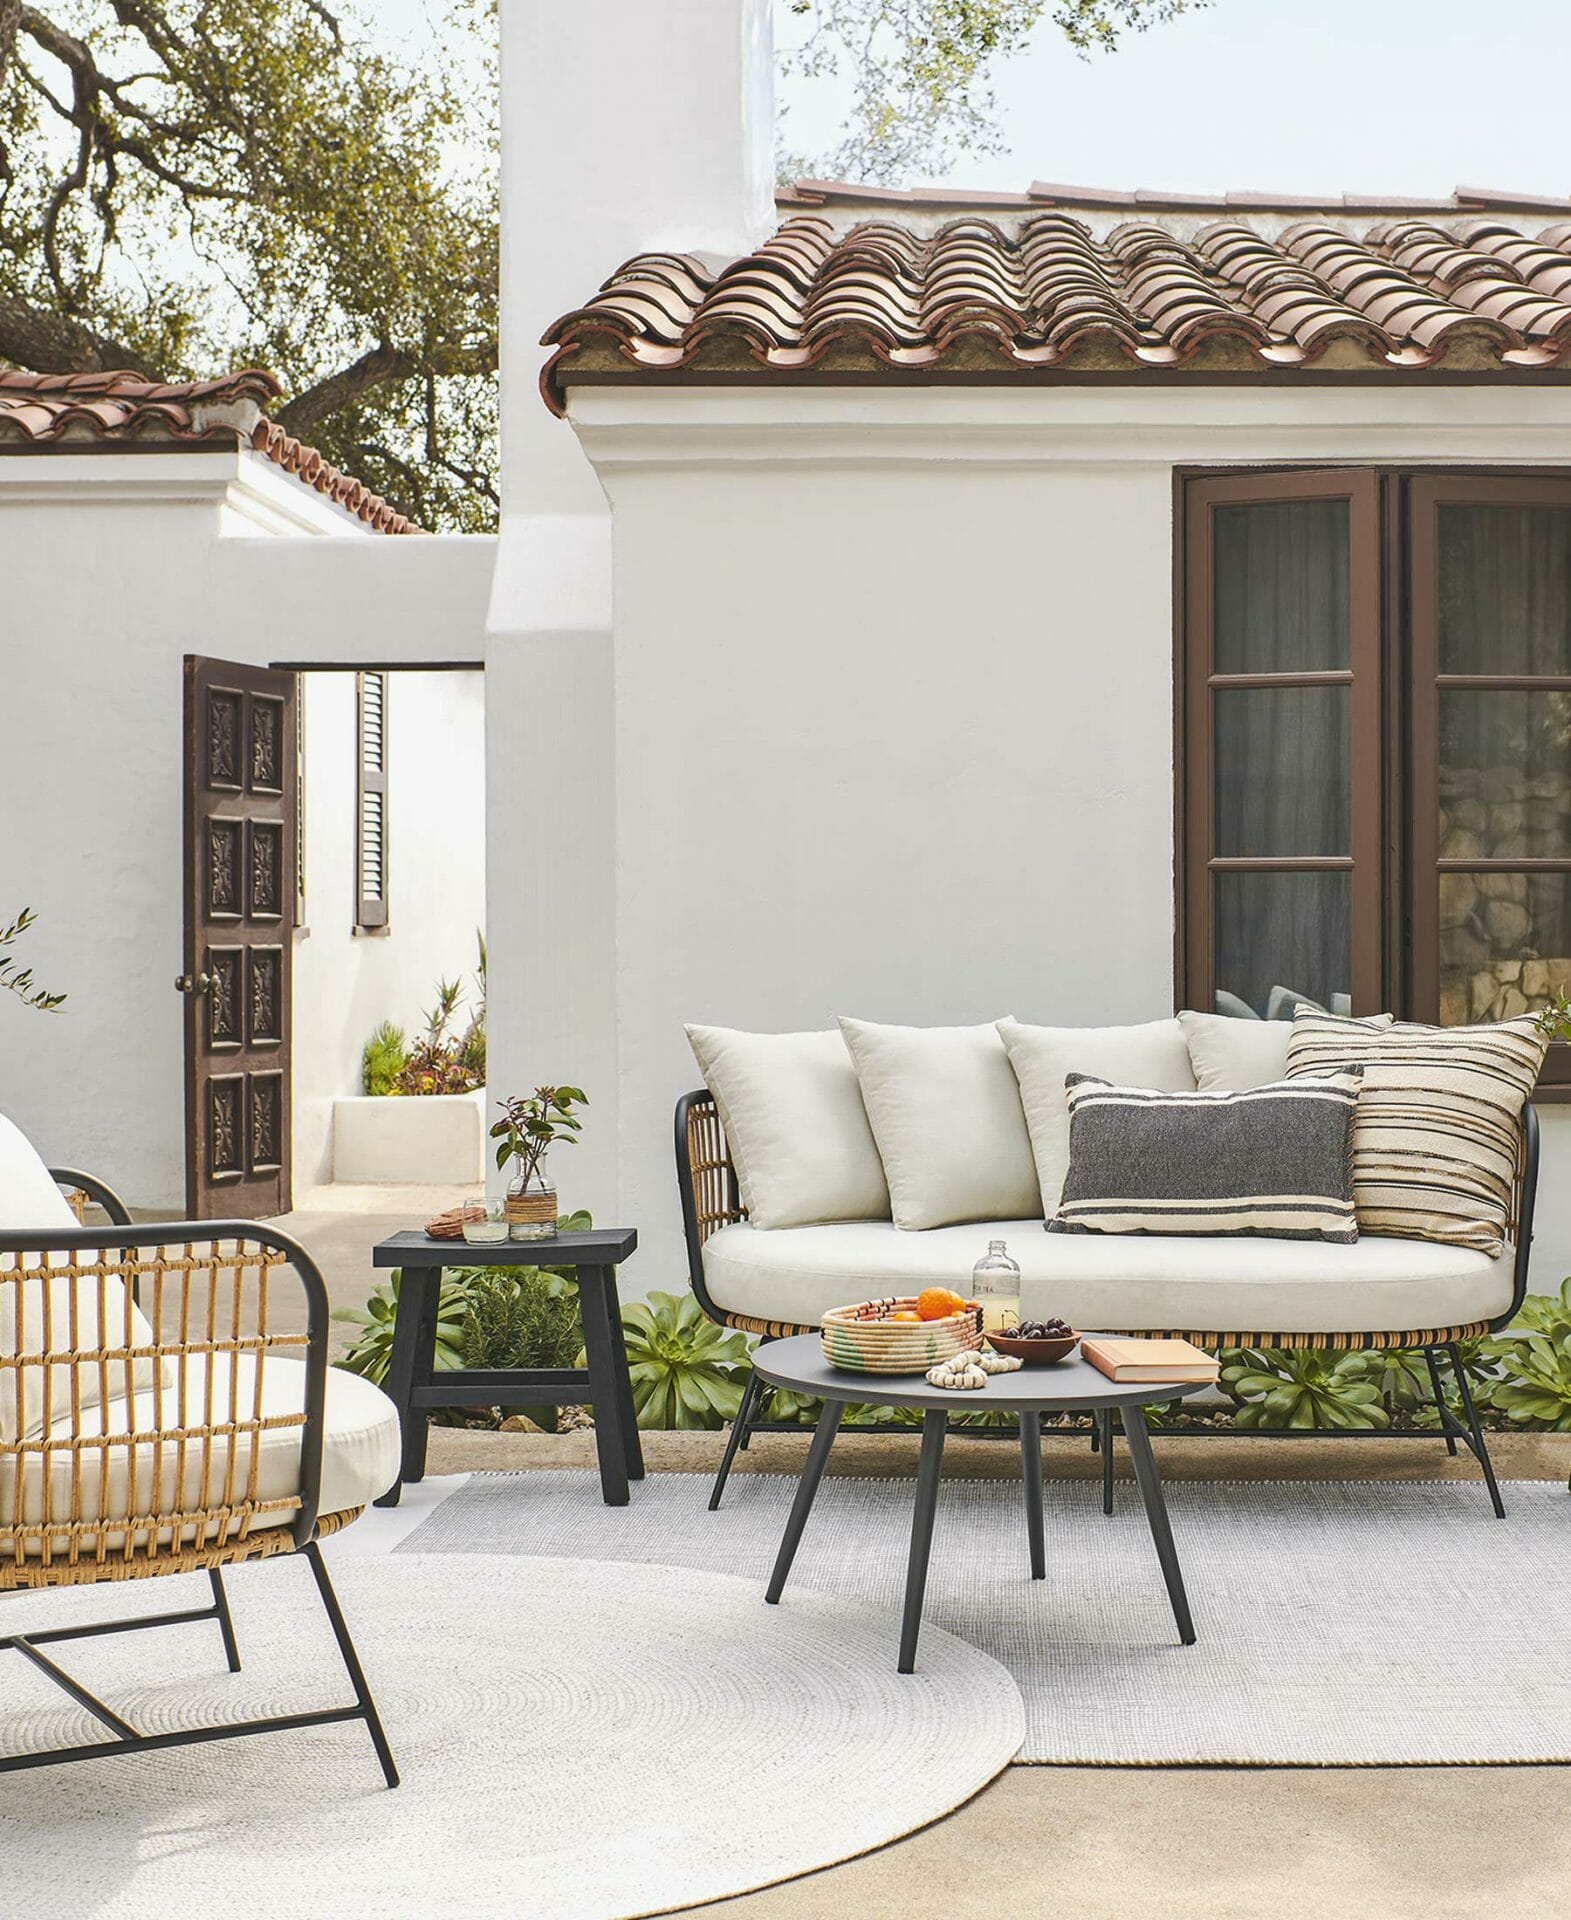 The Onya Sofa is featured in a condo courtyard with Spanish-style architecture.